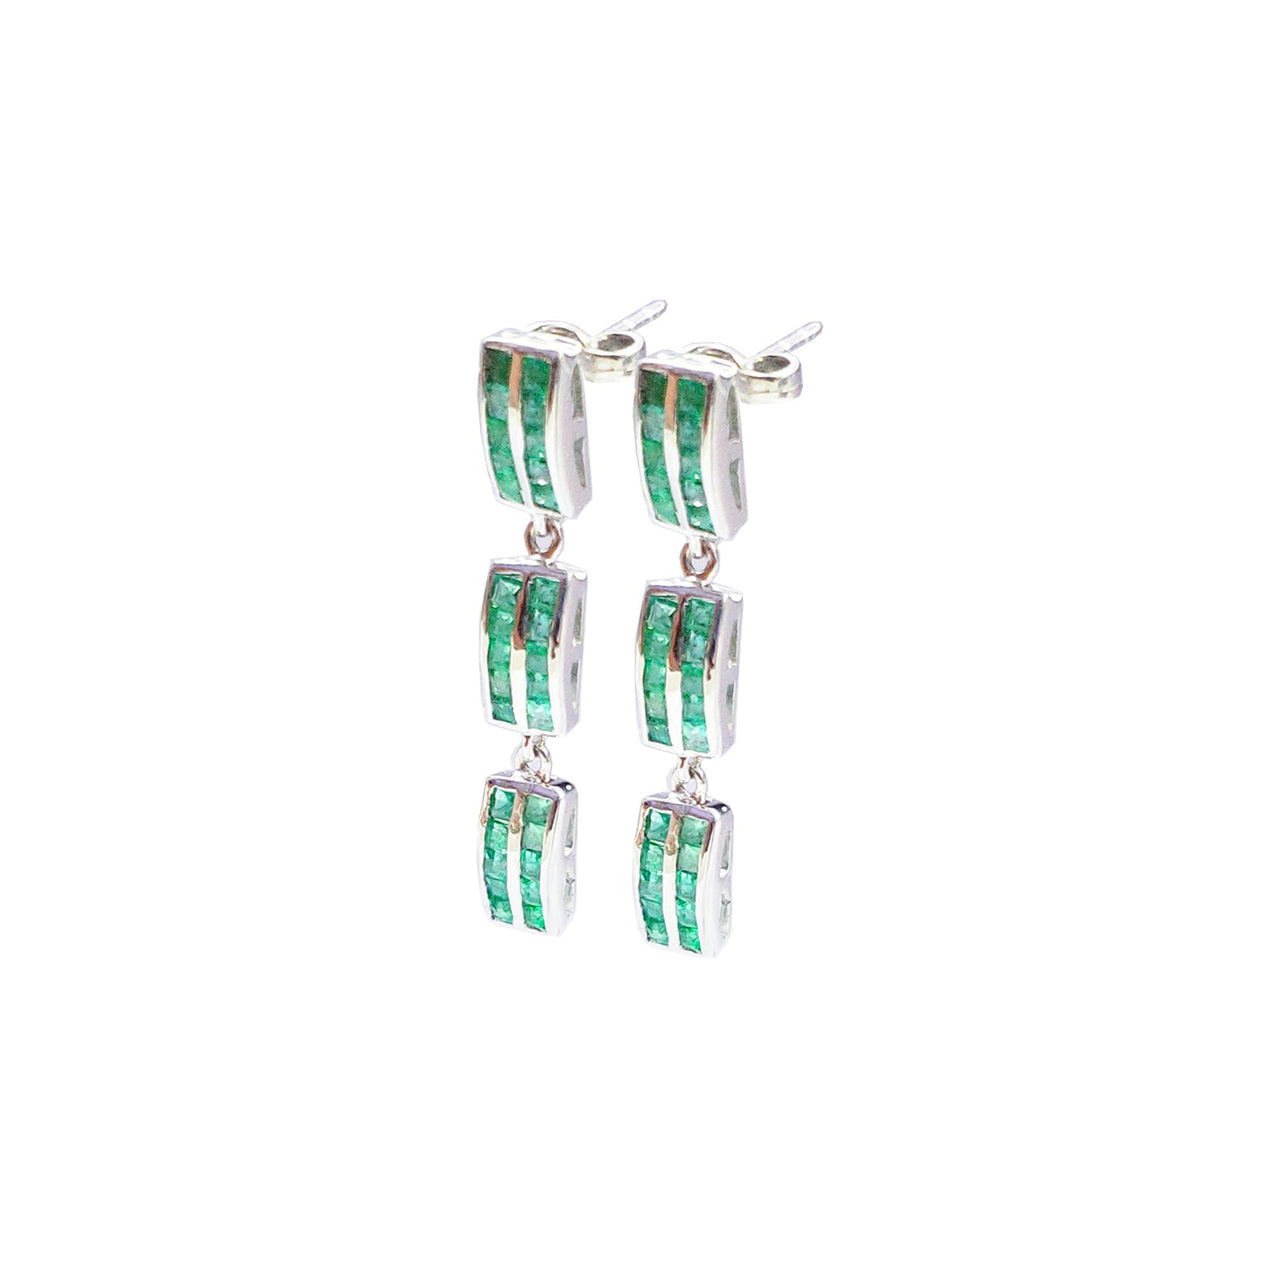 Emerald Baguette Chandelier Earrings